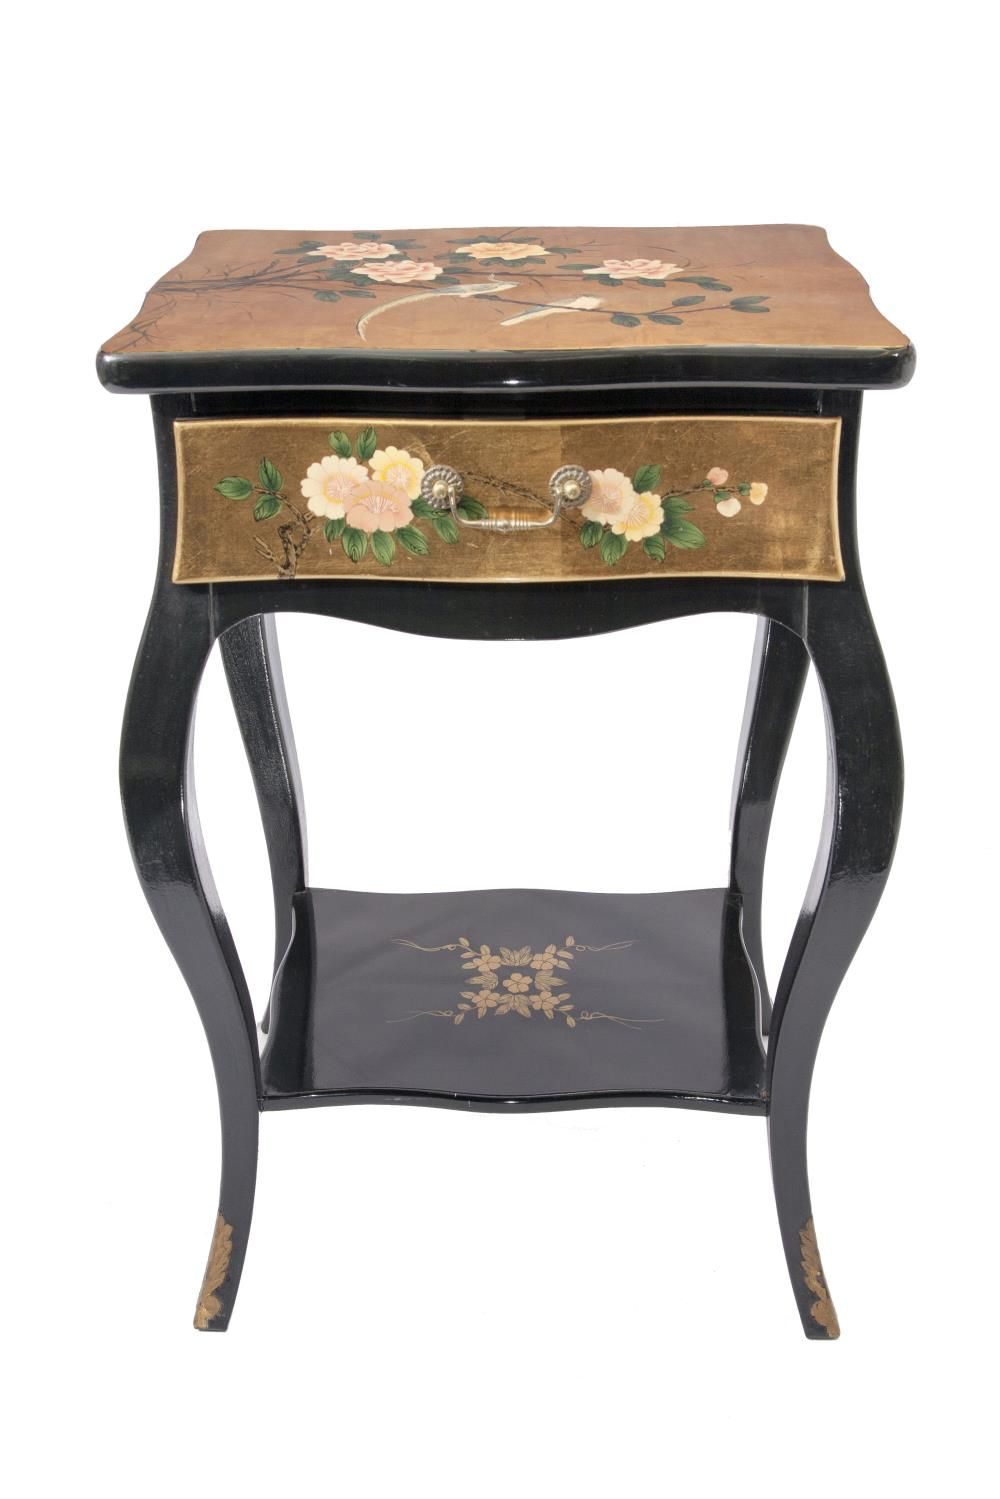 Gold Leaf Side Table Chinoiserie Hand Painted Classic Hallway With A Drawer And Shelf